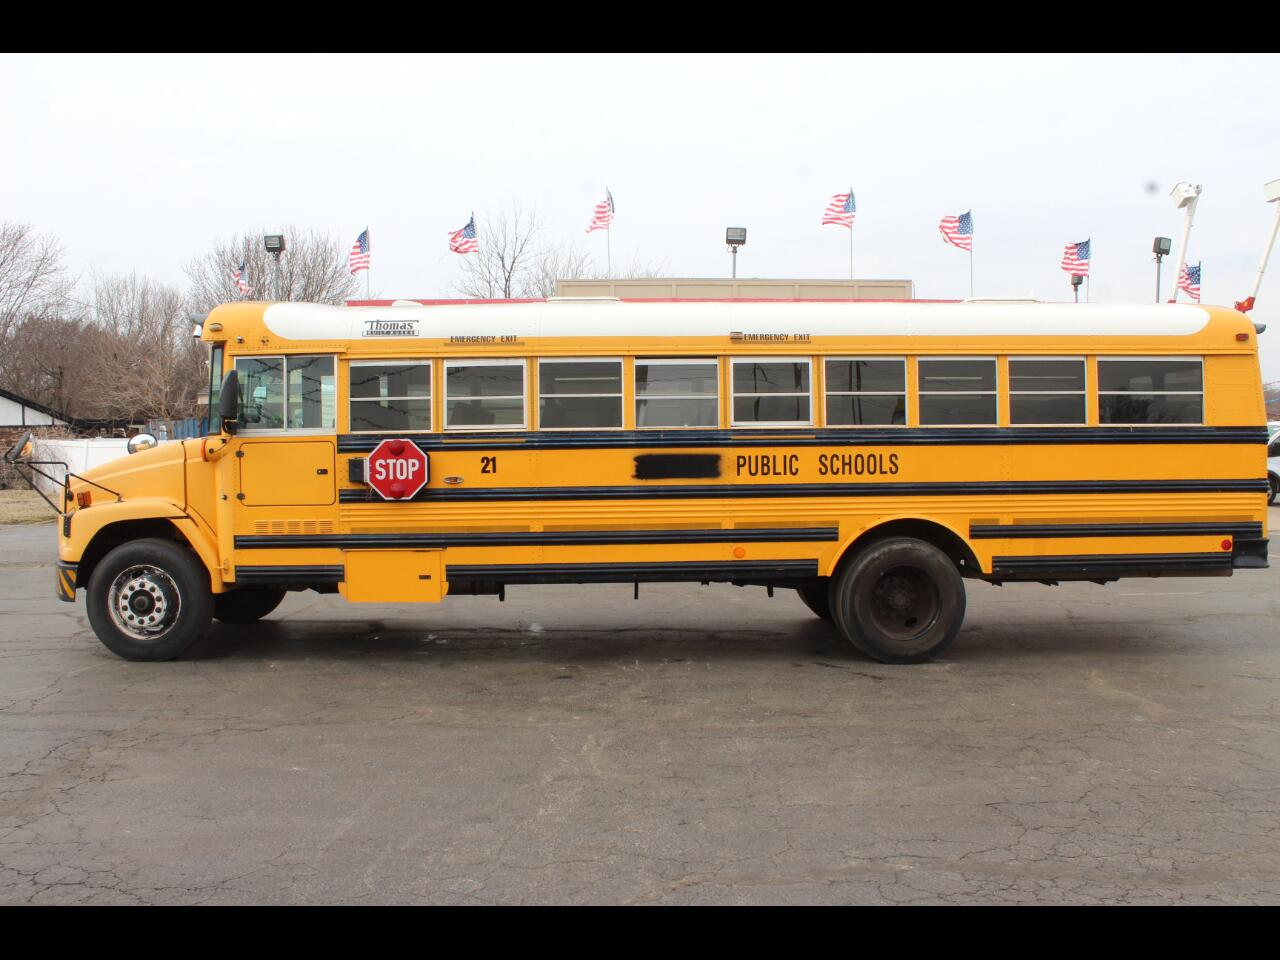 Used 2005 Thomas School Bus for Sale in Collinsville, OK